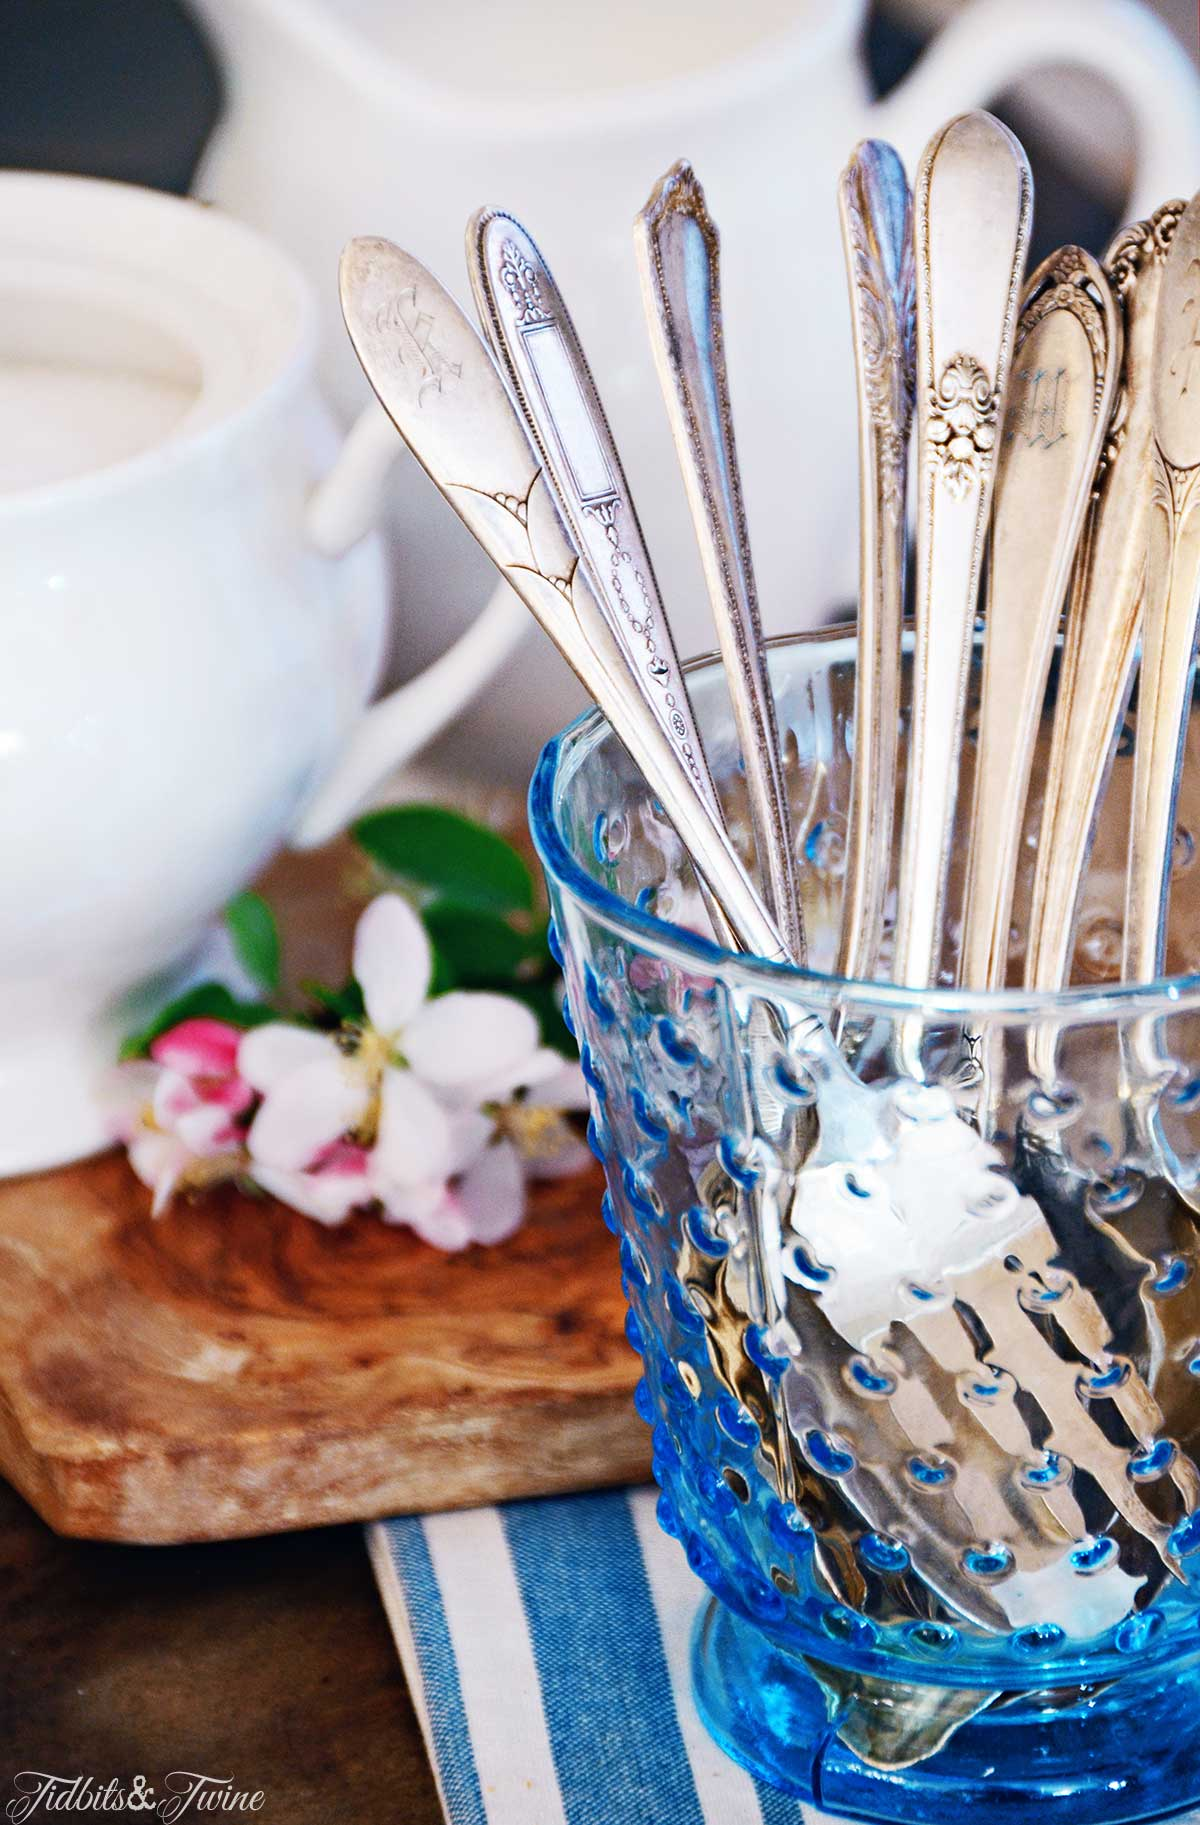 TIDBITS&TWINE -  A cup can be used as a utensil caddy!